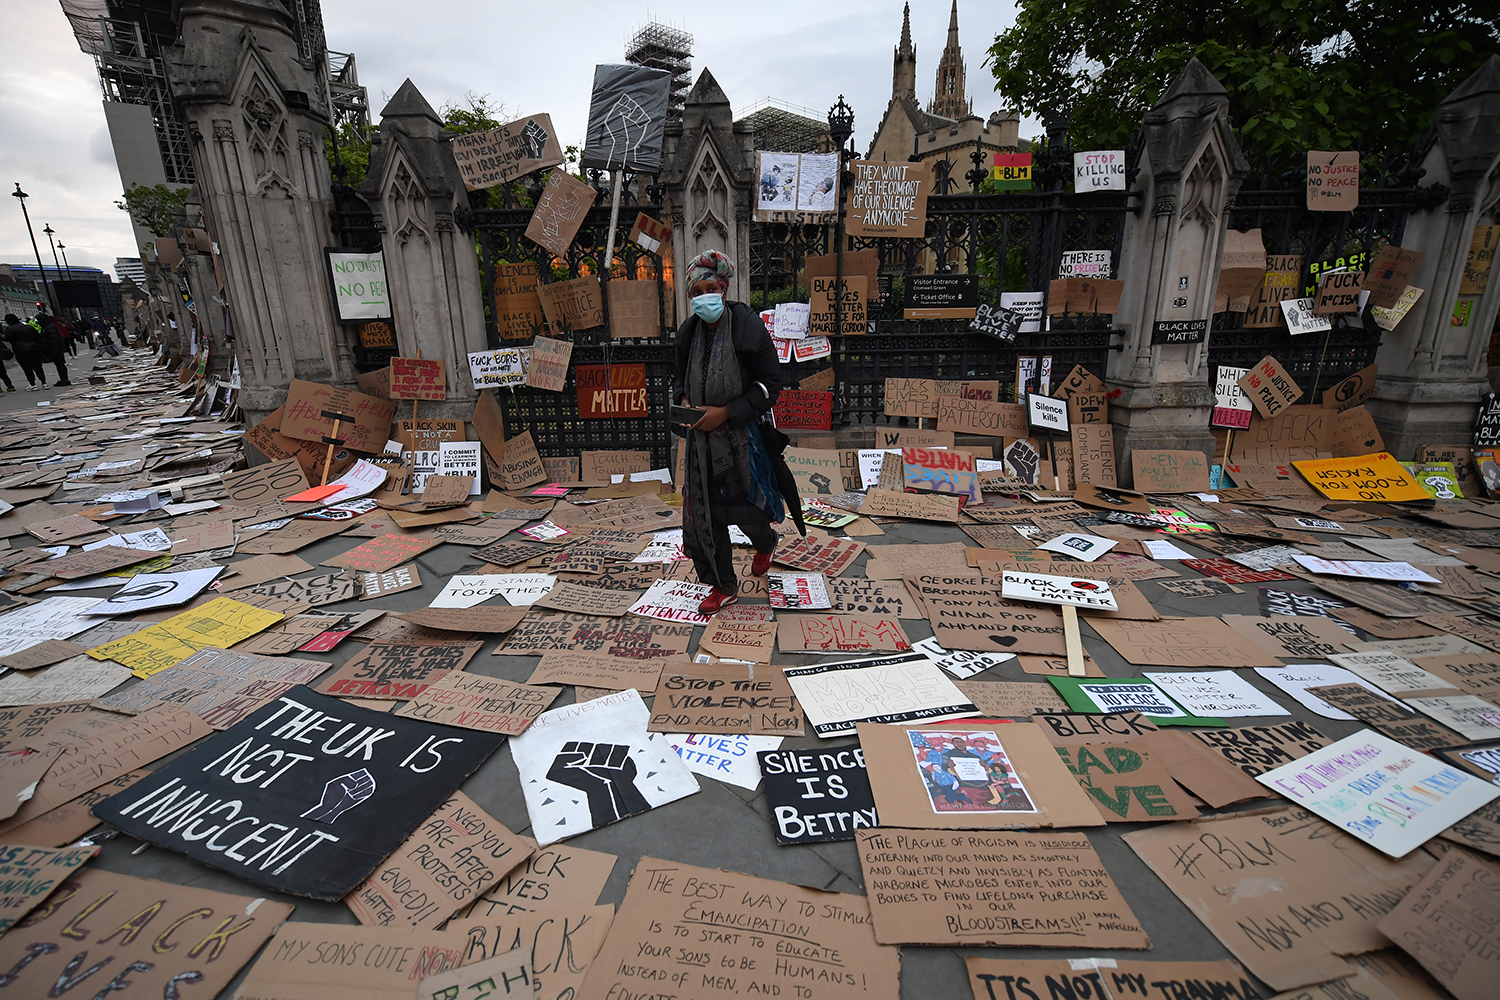 A woman walks among placards and signs left outside the Houses of Parliament during a Black Lives Matter protest in Westminster, London, on June 7. Chris J Ratcliffe/Getty Images